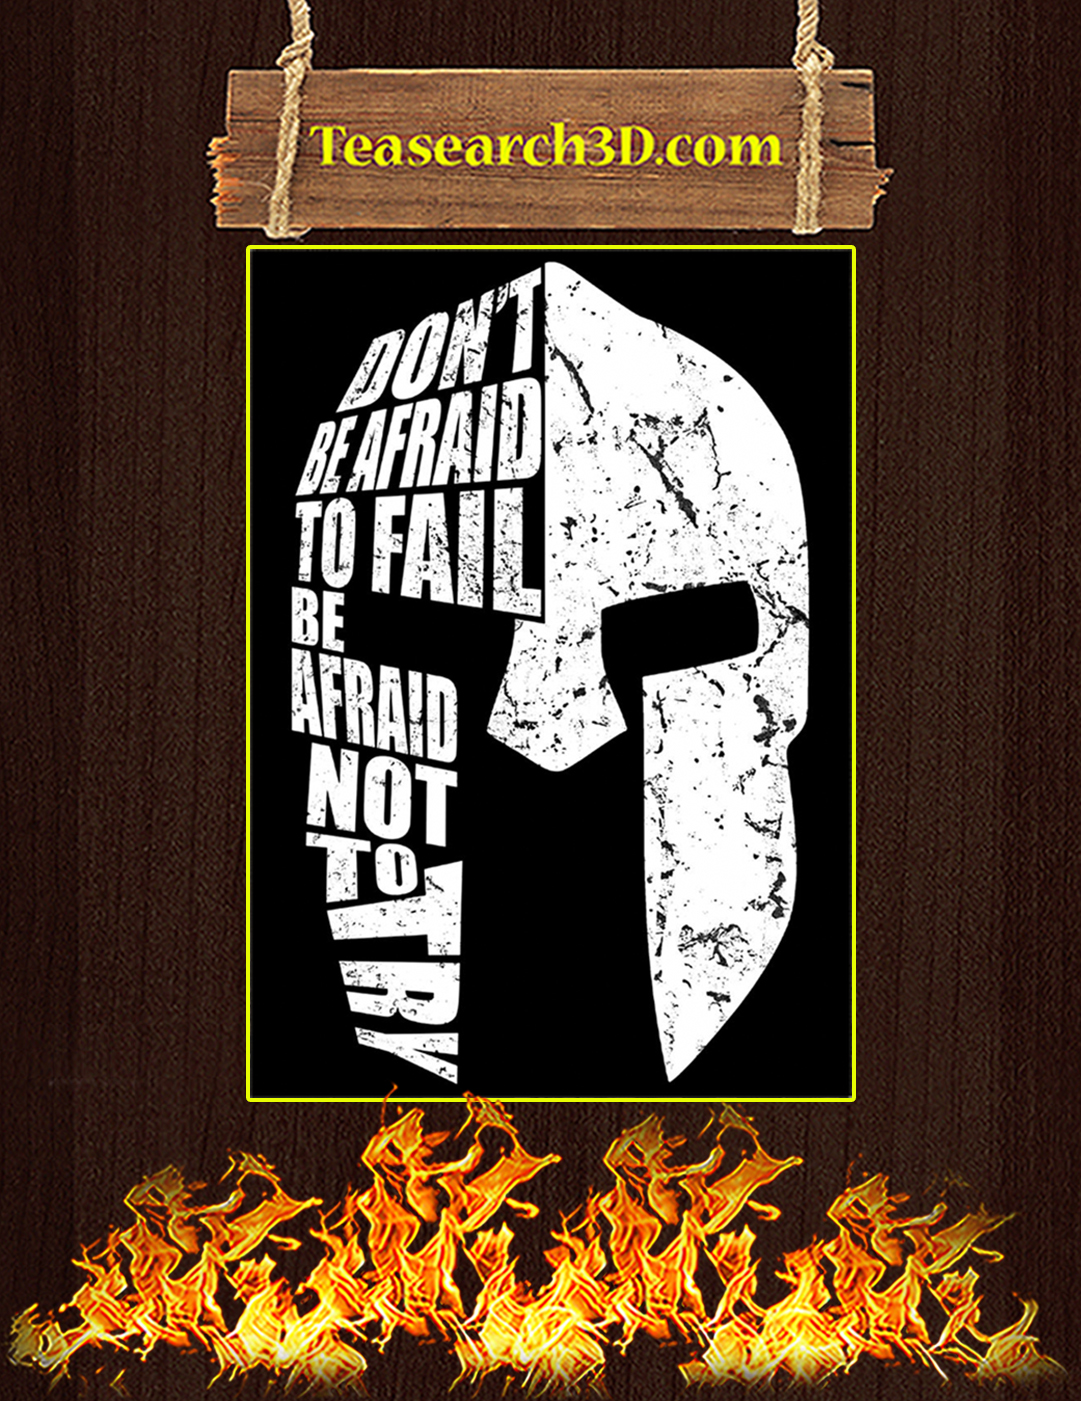 Spartan don't be afraid to fail be afraid not to try poster A2